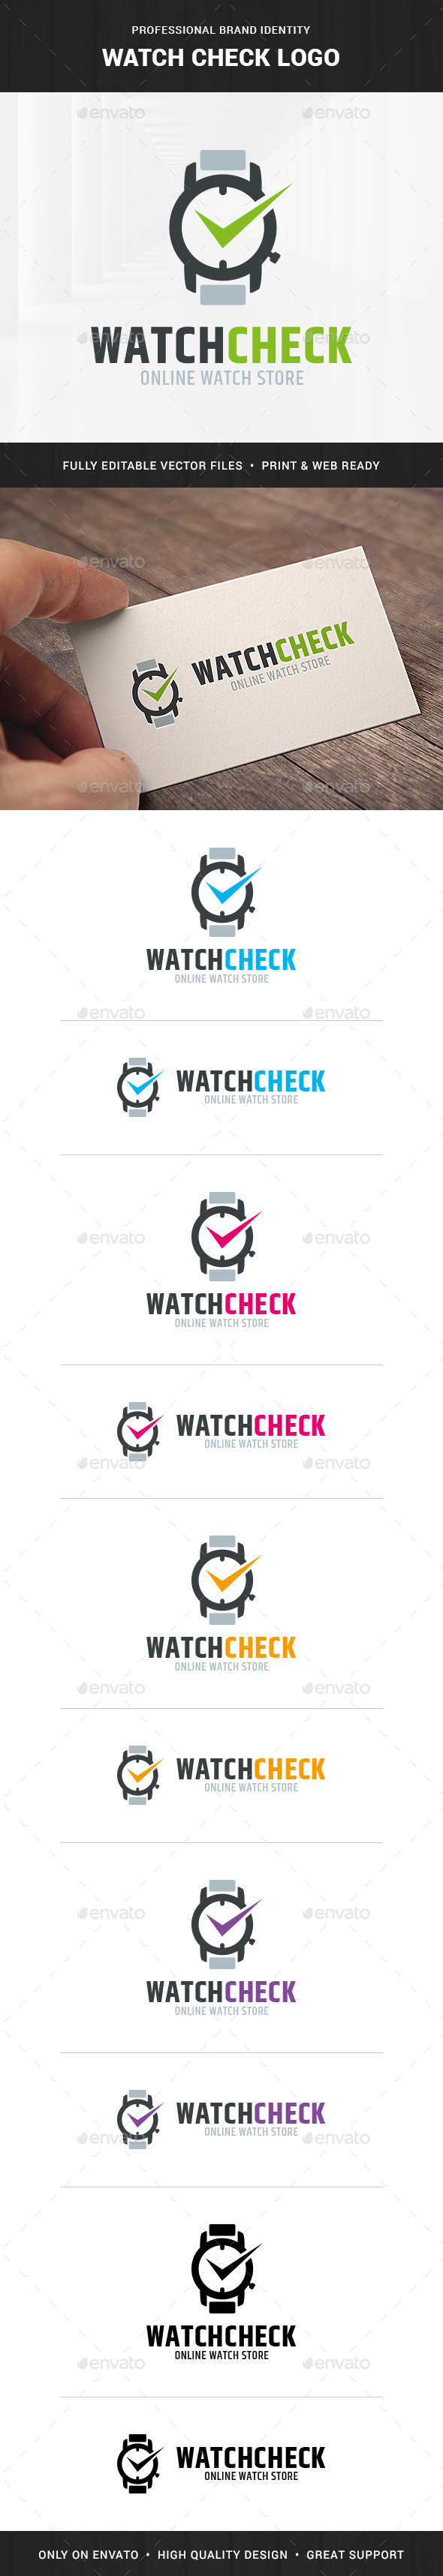 Watch Check Logo Template - Objects Logo Templates